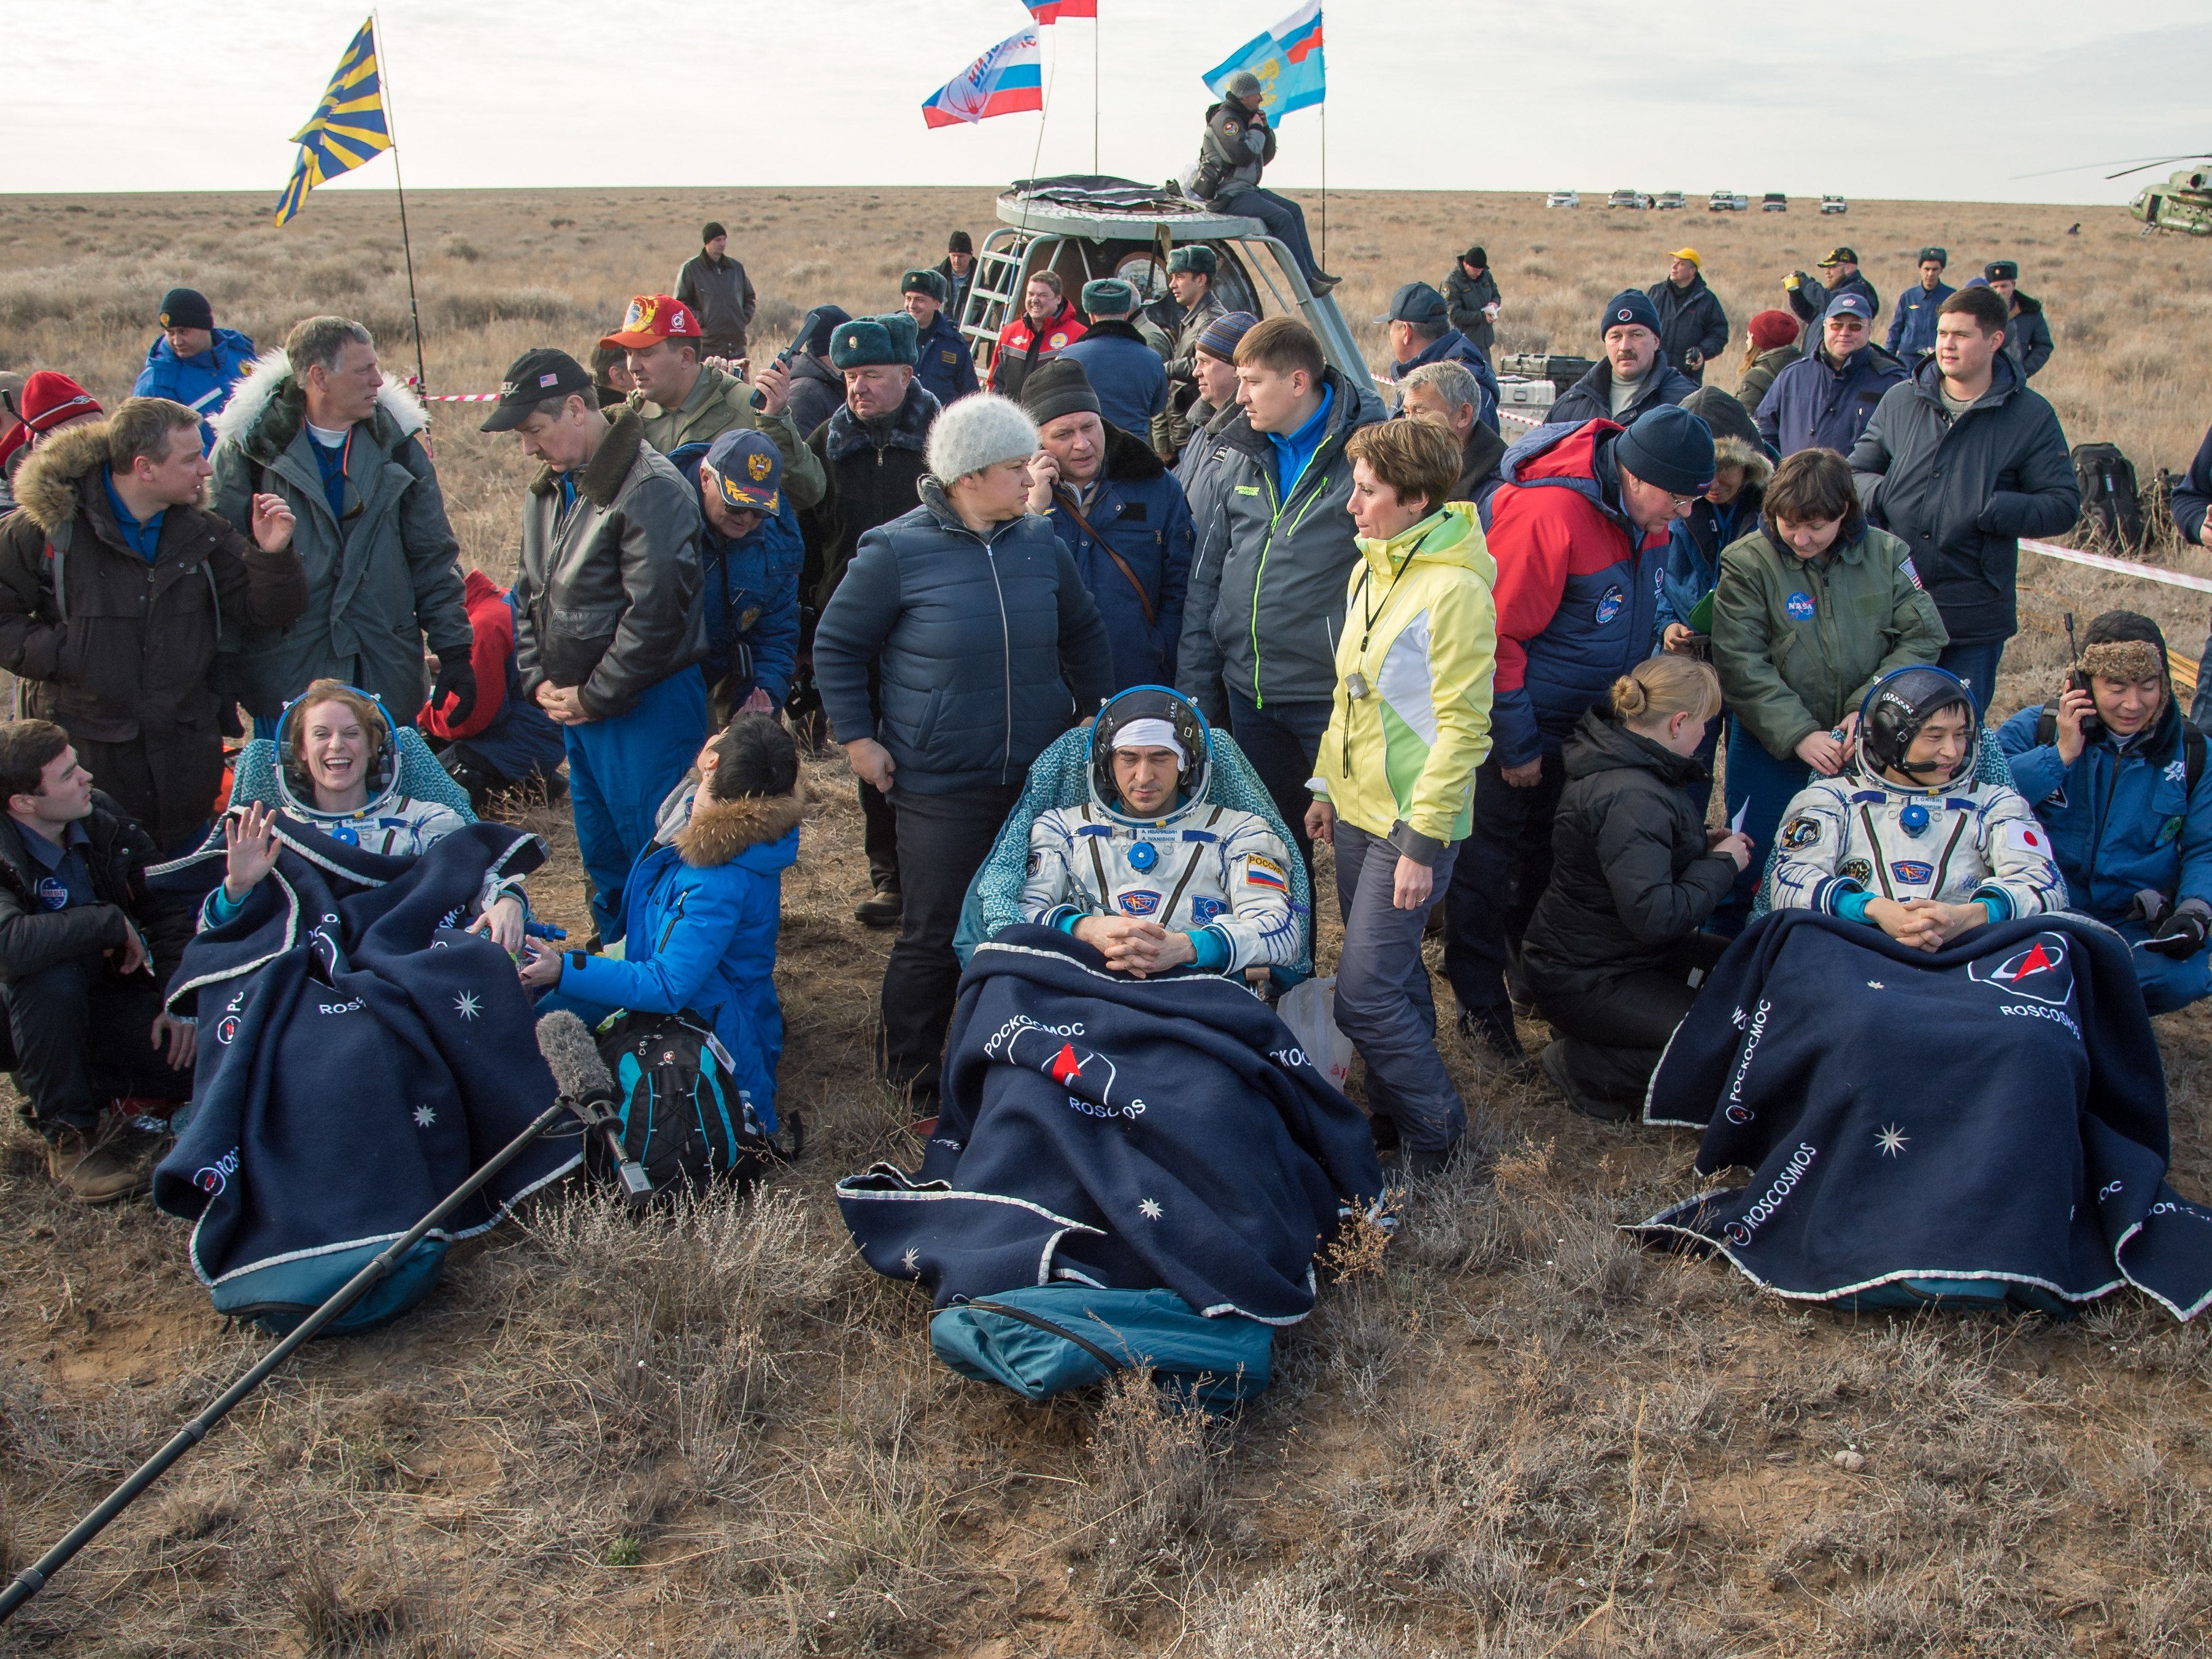 NASA astronaut Kate Rubins, left, Russian cosmonaut Anatoly Ivanishin of Roscosmos, center, and astronaut Takuya Onishi of the Japan Aerospace Exploration Agency sit outside the Soyuz MS-01 spacecraft a few minutes after they touched down on earth Sunday. Bill Ingalls/NASA.